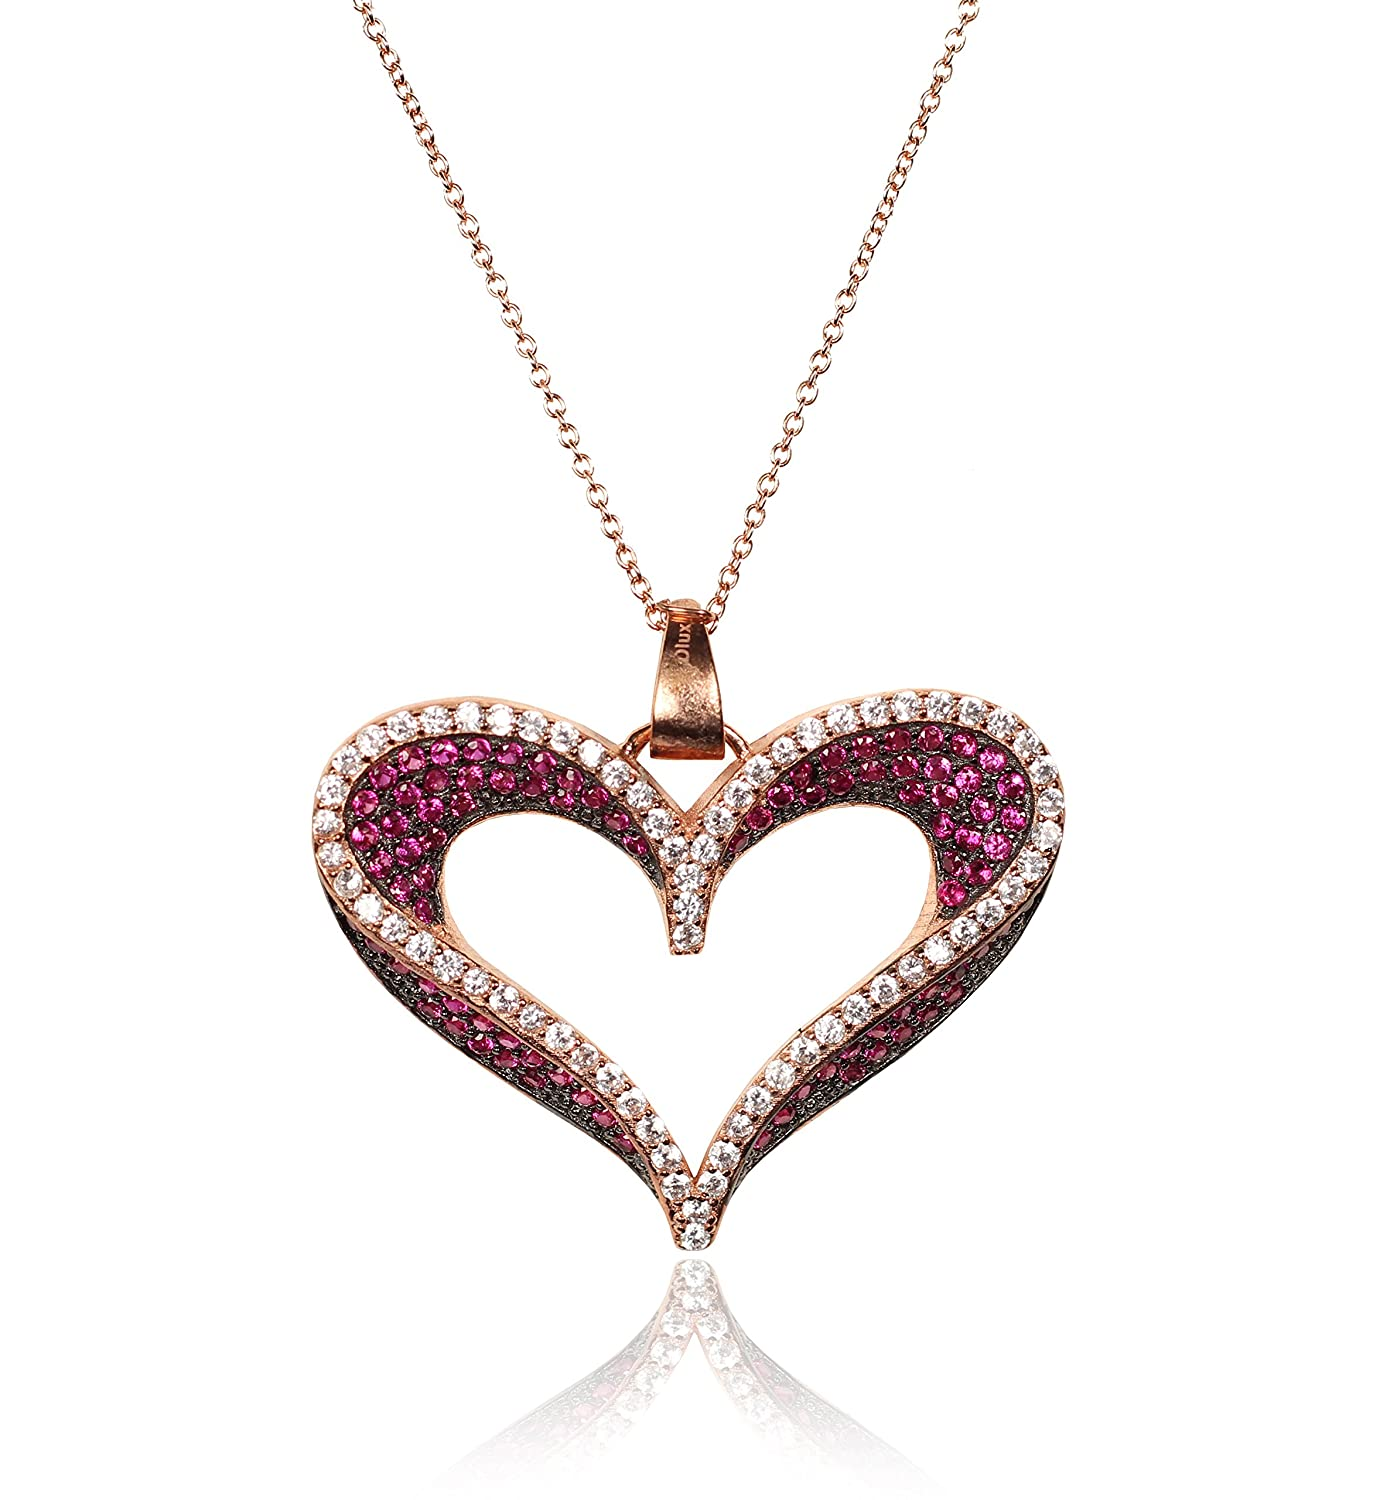 Ruby and White CZ Open Heart Pendant Classic Jewelry Sterling Silver Necklace,Rose and Black Plated Sterling Silver